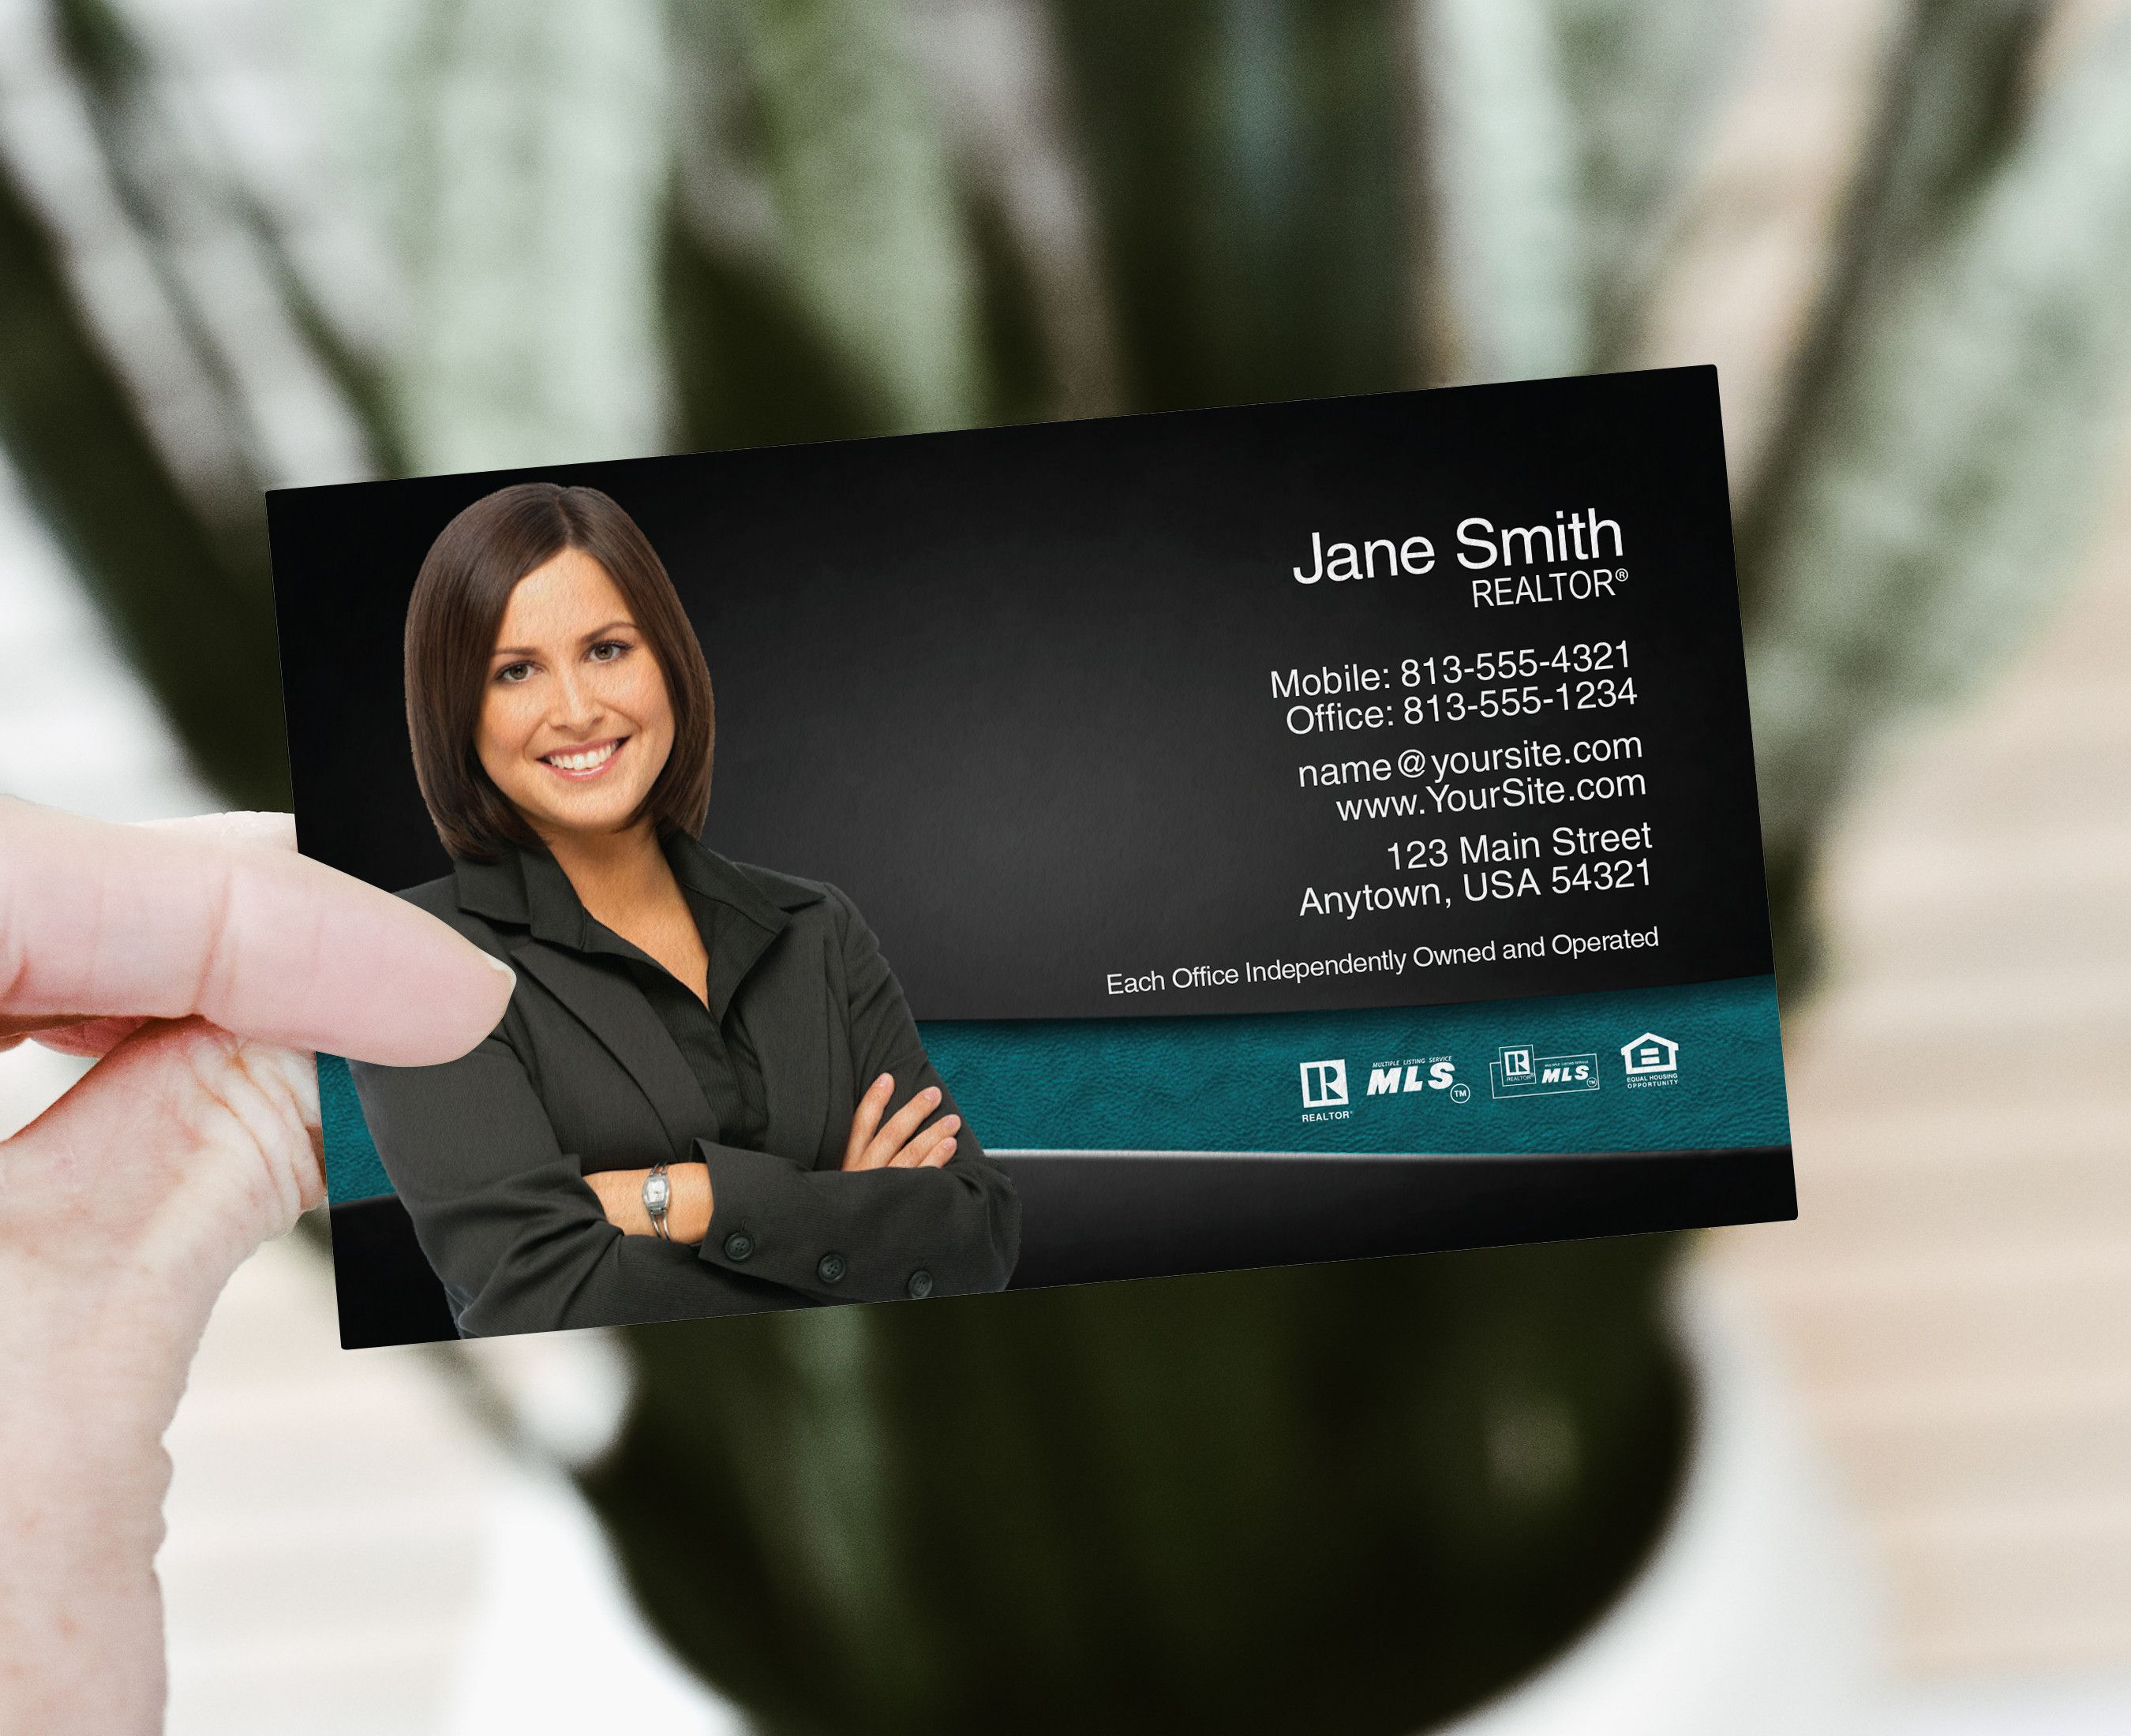 Have You Seen Our New Exit Realty Business Cards Realtor Exitrealty Realestate Realtors Business Card Design Software Exit Realty Business Cards Online